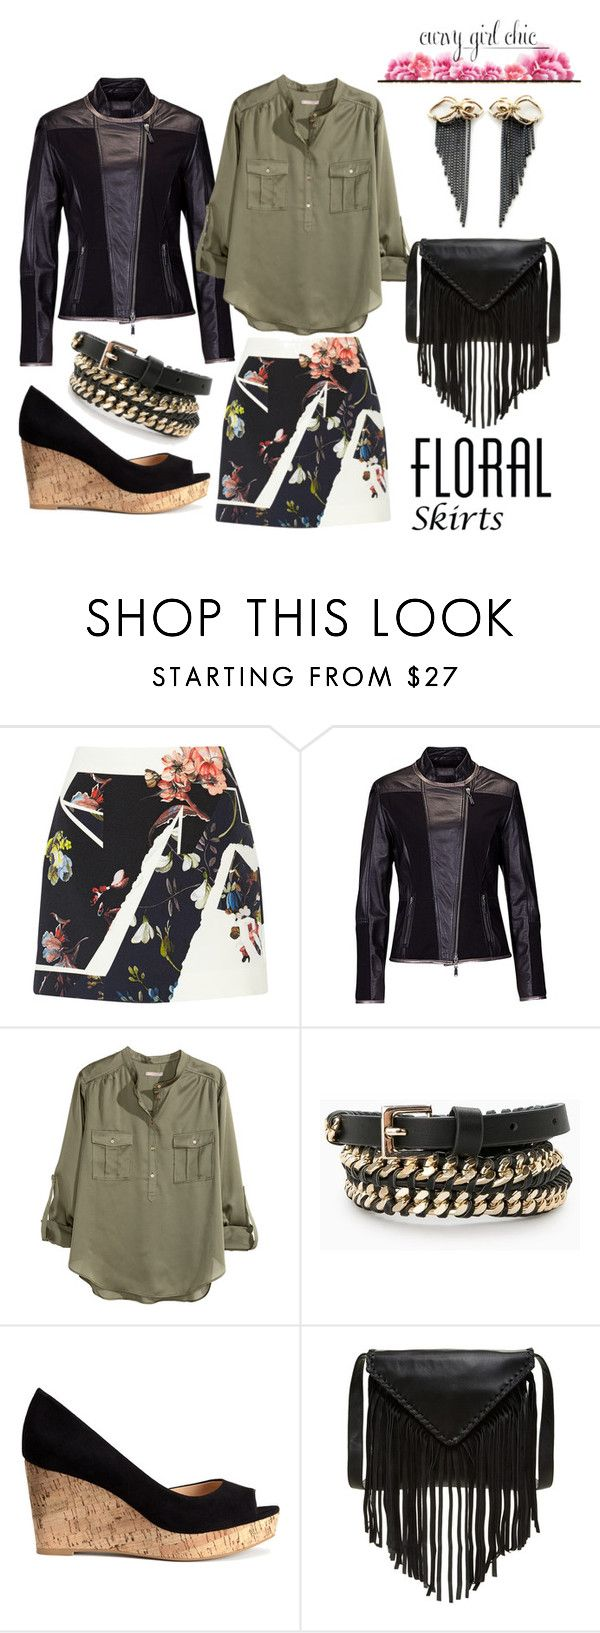 """""""curvy girl chic ii"""" by collagette ❤ liked on Polyvore featuring Erdem, Betty Barclay, H&M, MANGO, J.J. Winters, Rachel Entwistle, contestentry and PVCurvyChic"""